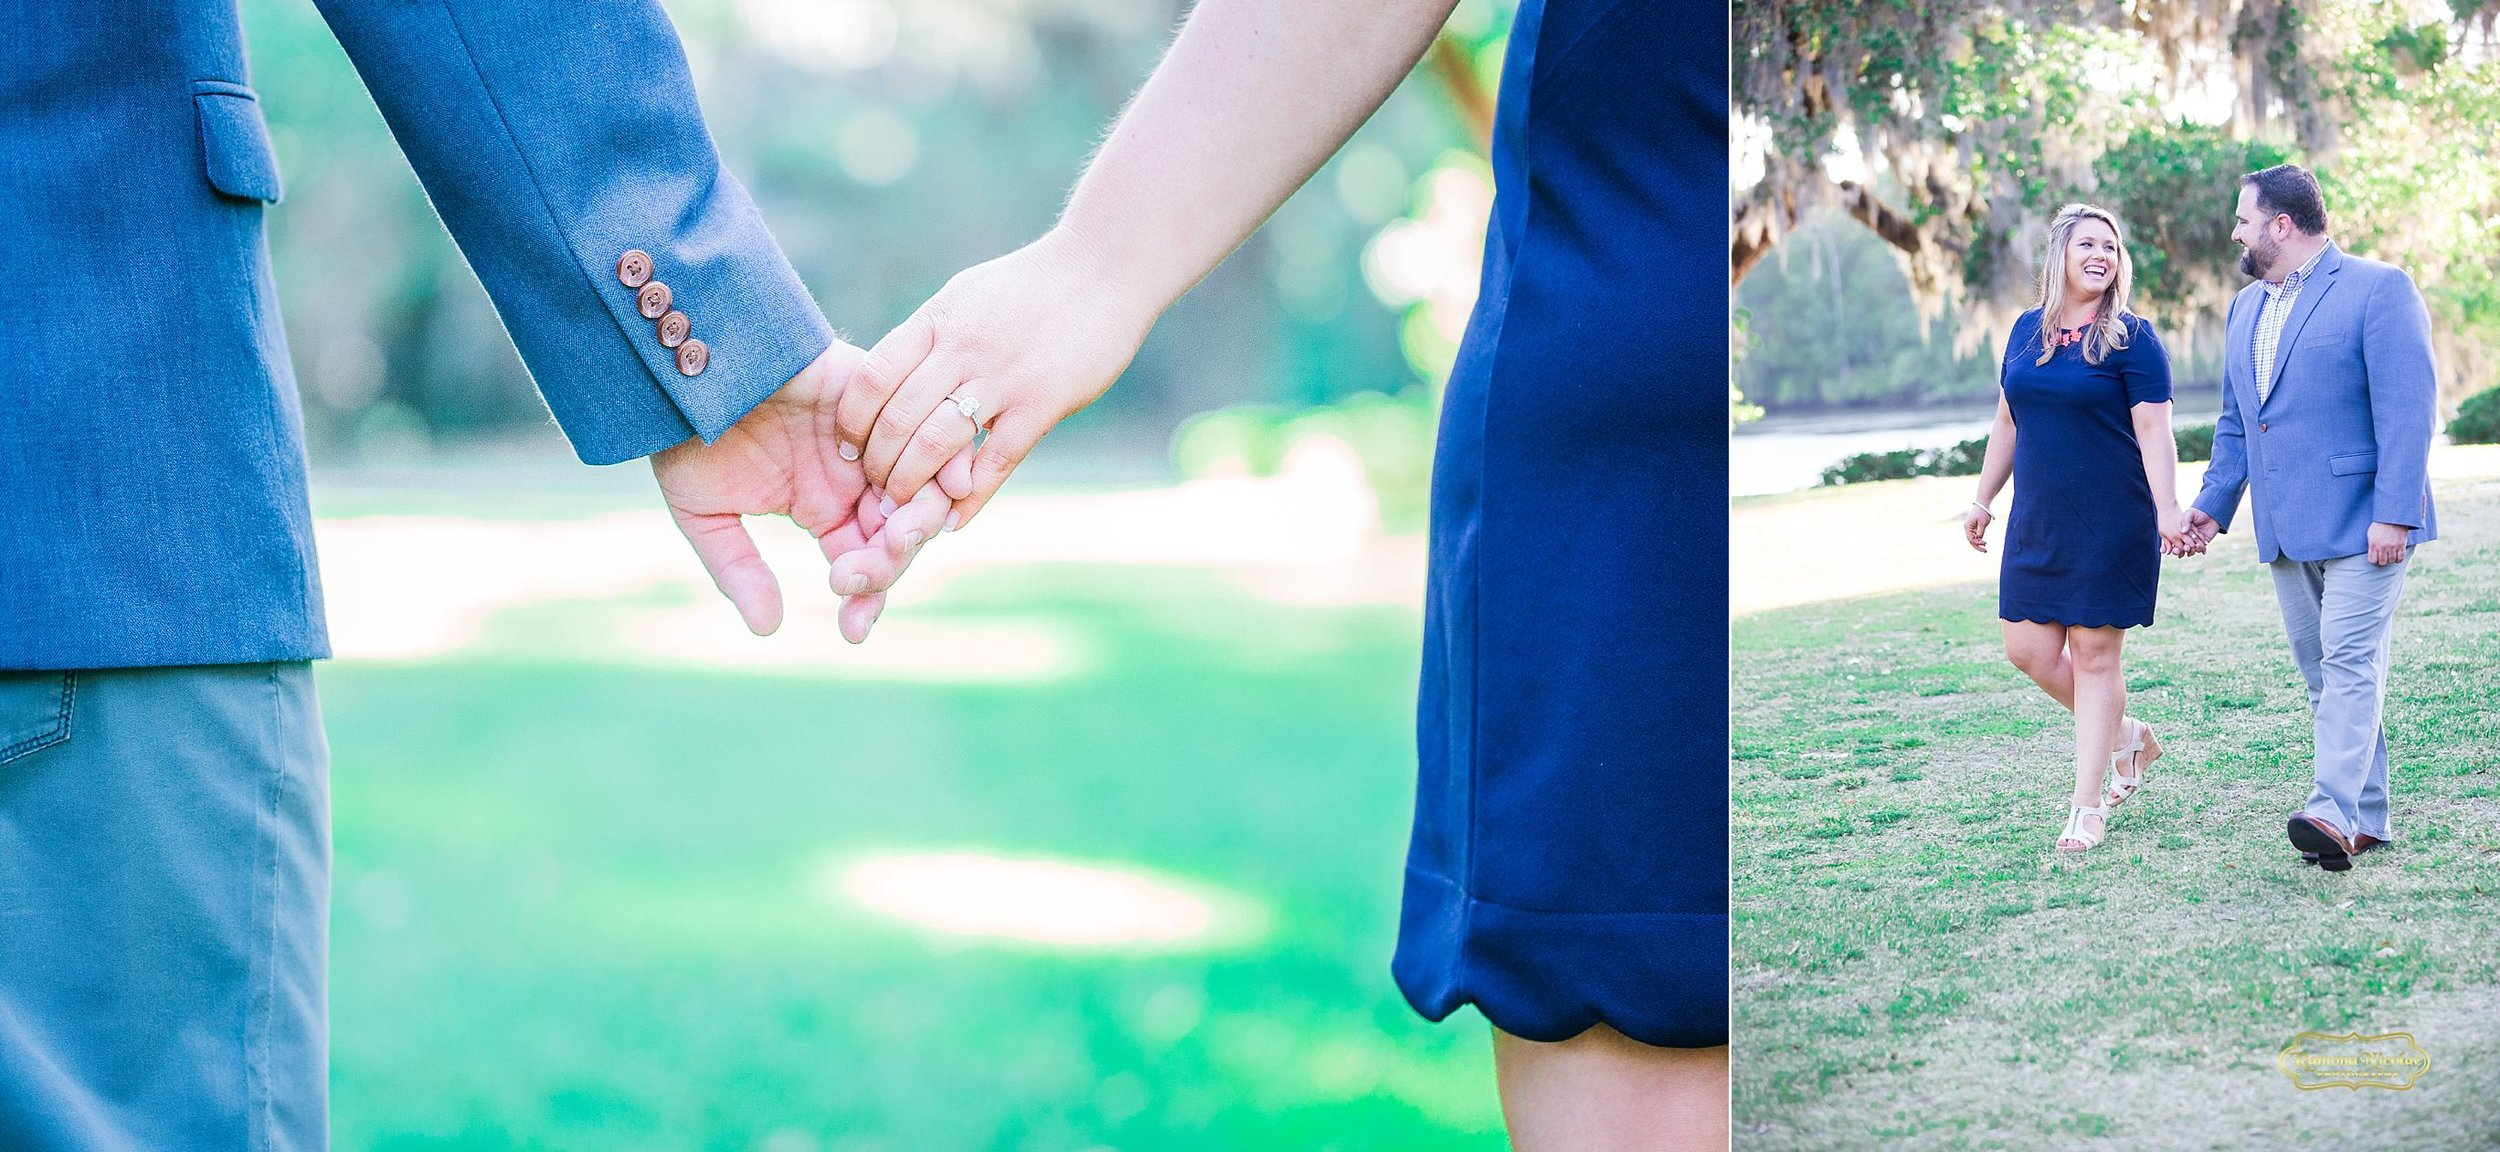 holding hands walking and laughing for ramona nicolae photography engagement session at wachesaw plantation.jpg